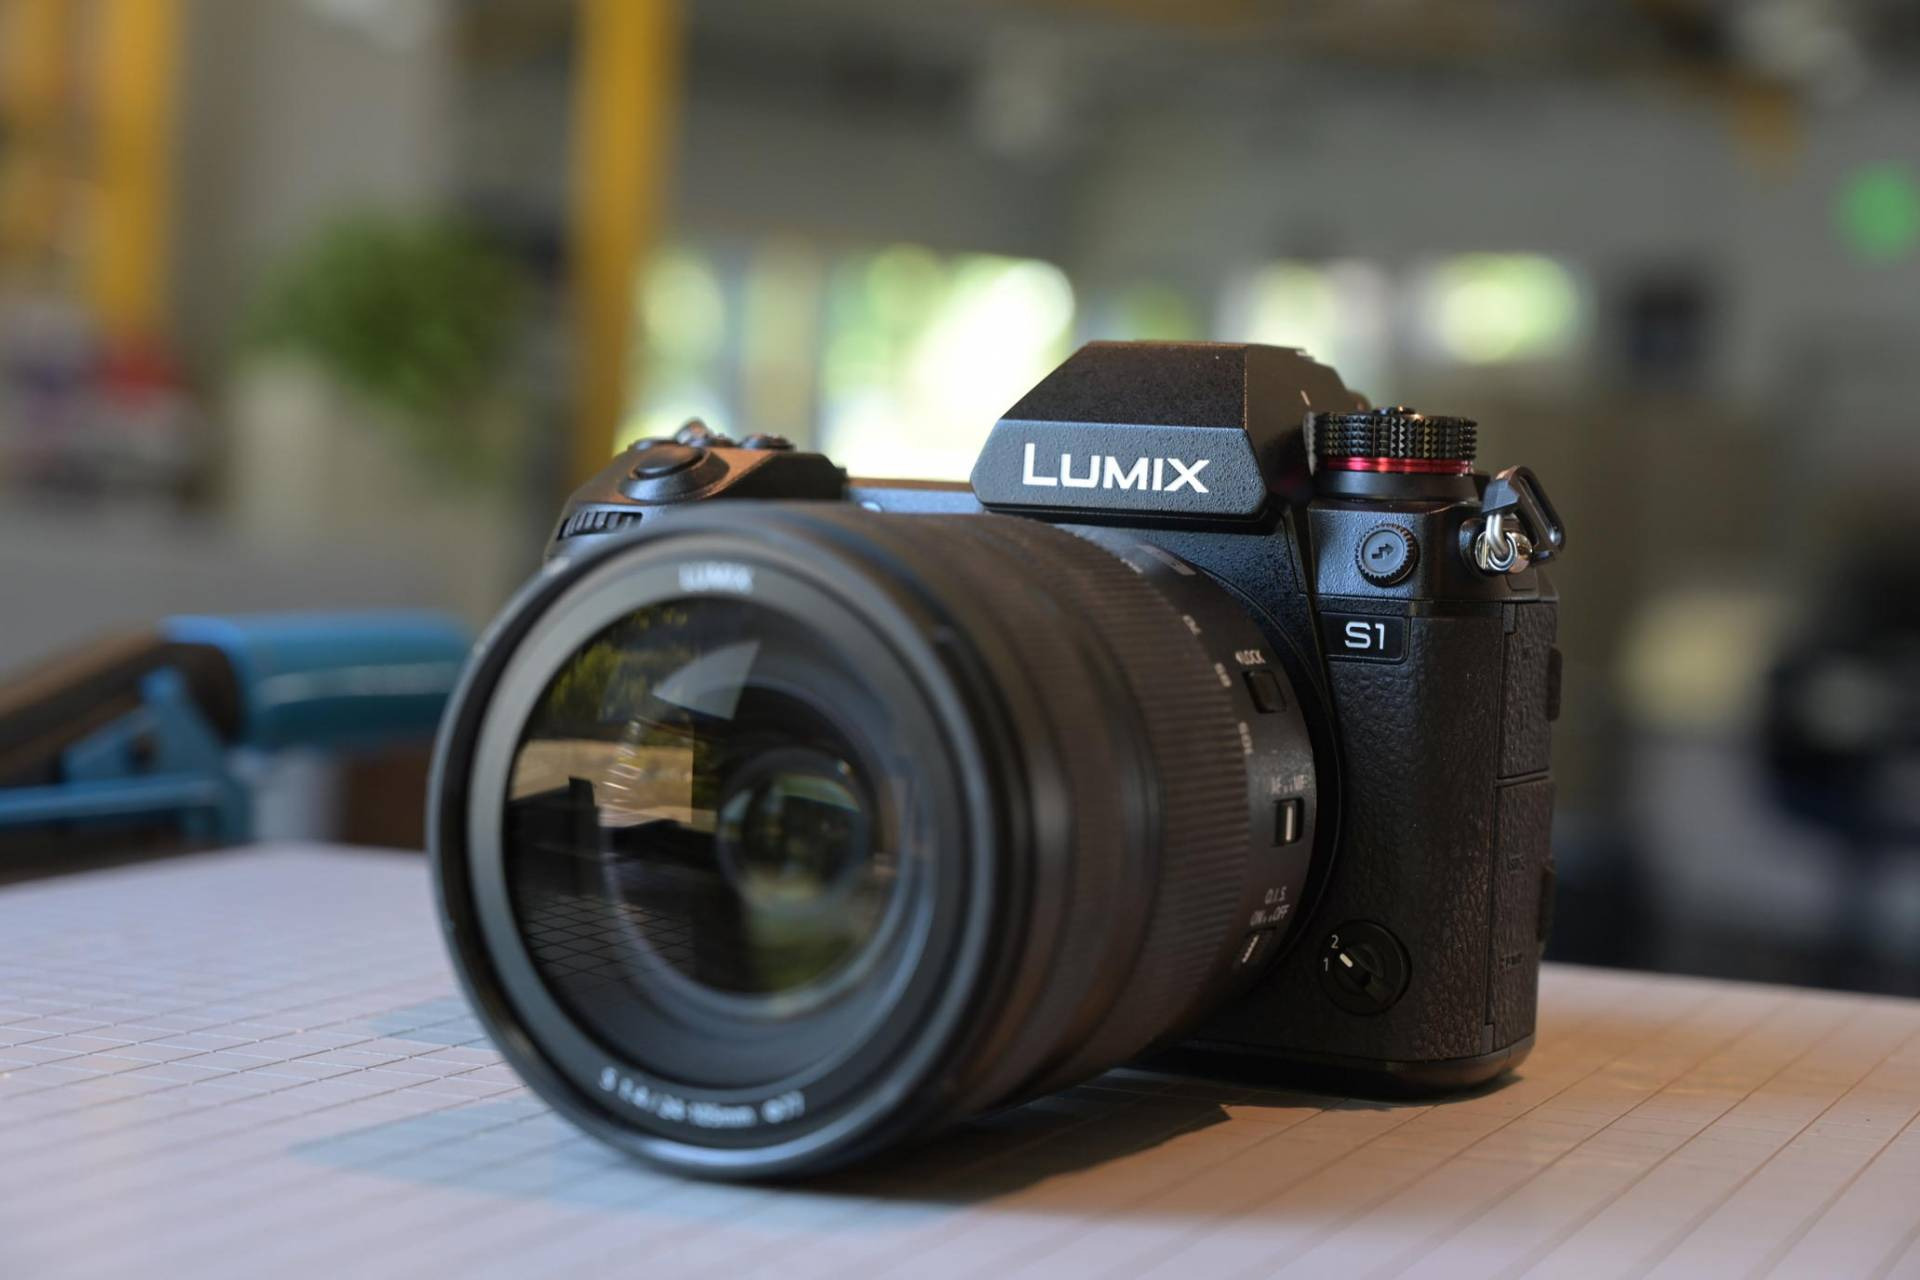 Pansonic Lumix S1 review - front view with lens